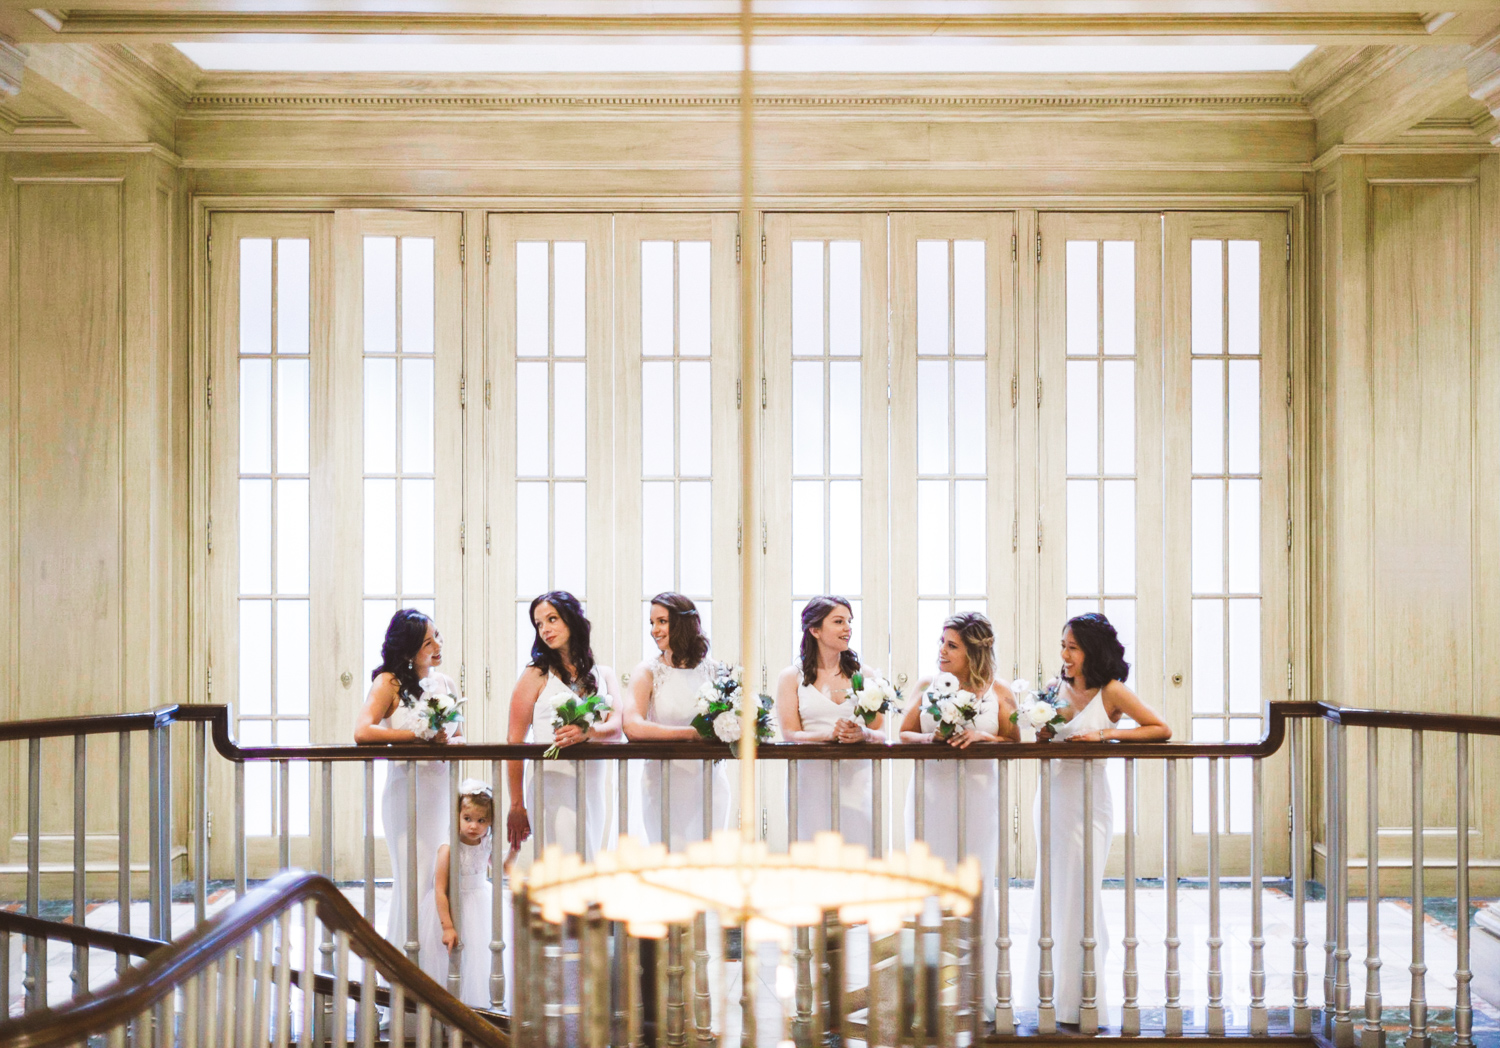 013 - gorgeous portrait of bride and her bridesmaids.jpg